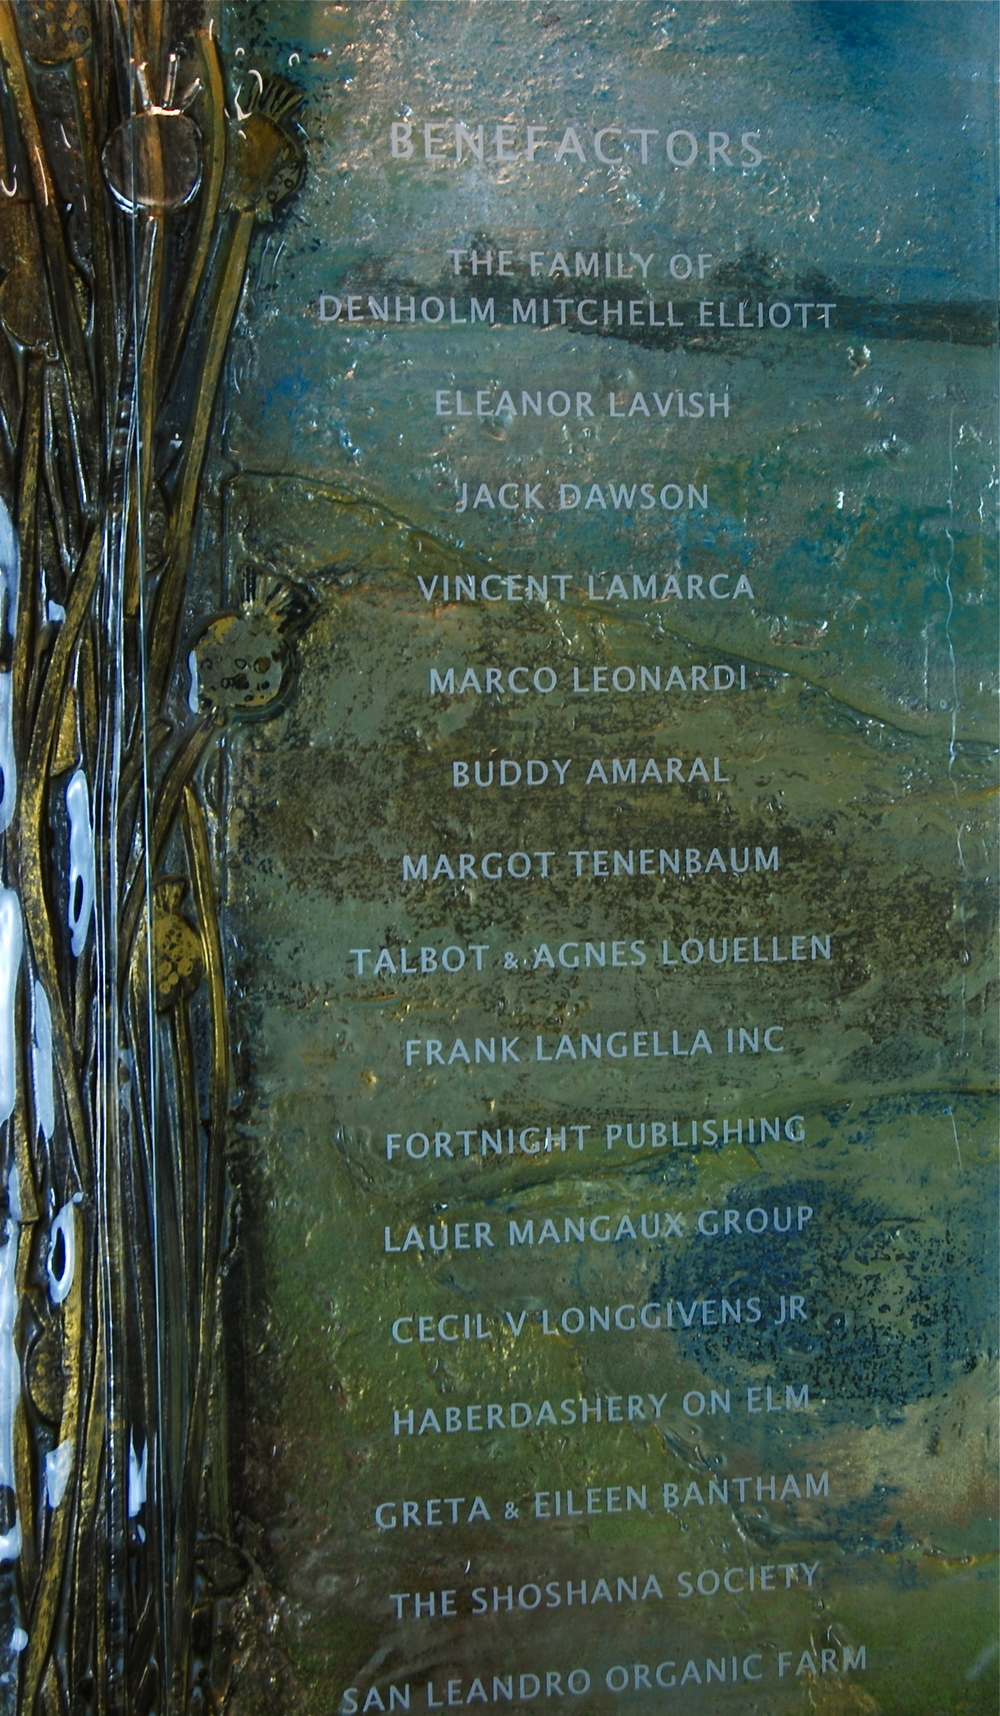 'Faulkner Institute' - Donor Recognition Wall - Fused and hand-painted glass (detail view).